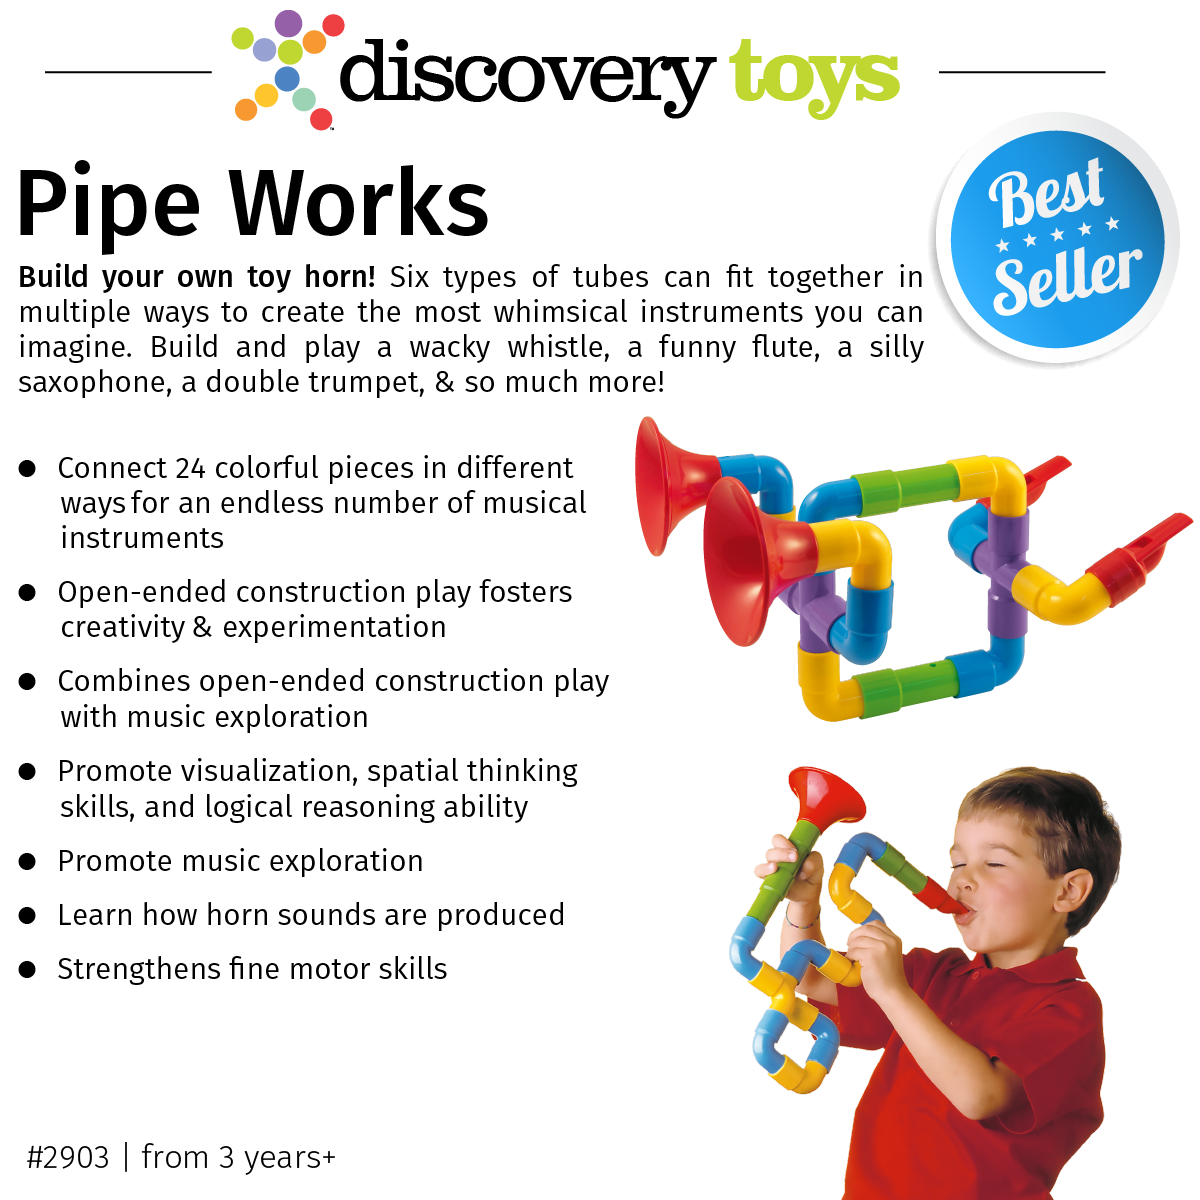 Discovery Toys is a direct sales company specializing in educational toys, learning games, books, games and music. Livermore, CA We've detected that JavaScript is disabled in your browser.